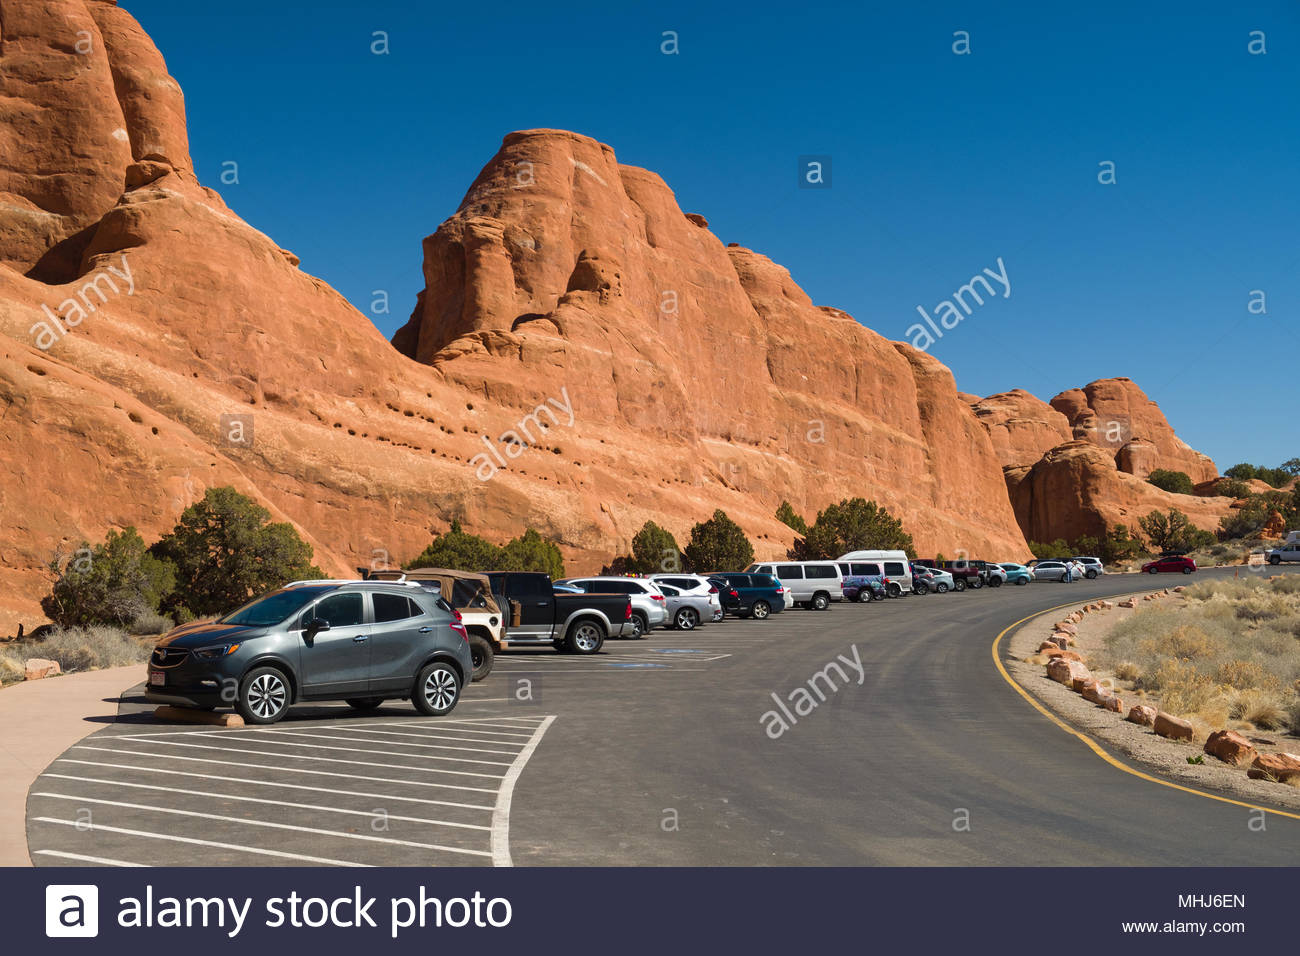 Cars, vans and SUV automobiles parked at the Devils Garden trailhead in Arches National Park, Grand County, Utah, USA - Stock Image